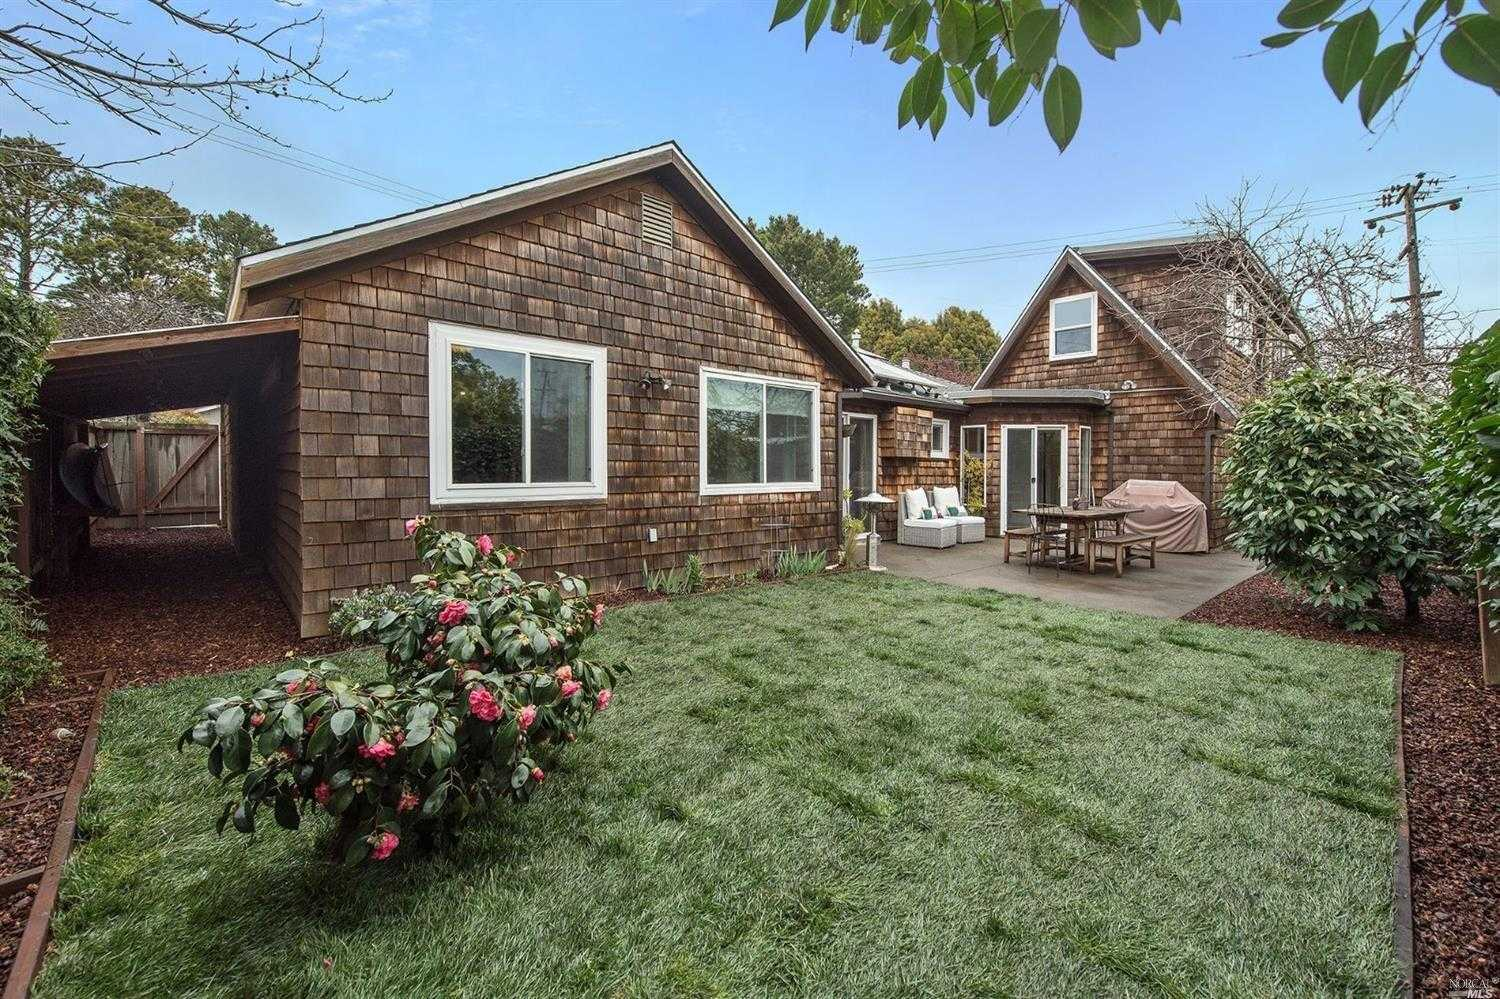 $1,649,000 - 4Br/2Ba -  for Sale in Mill Valley